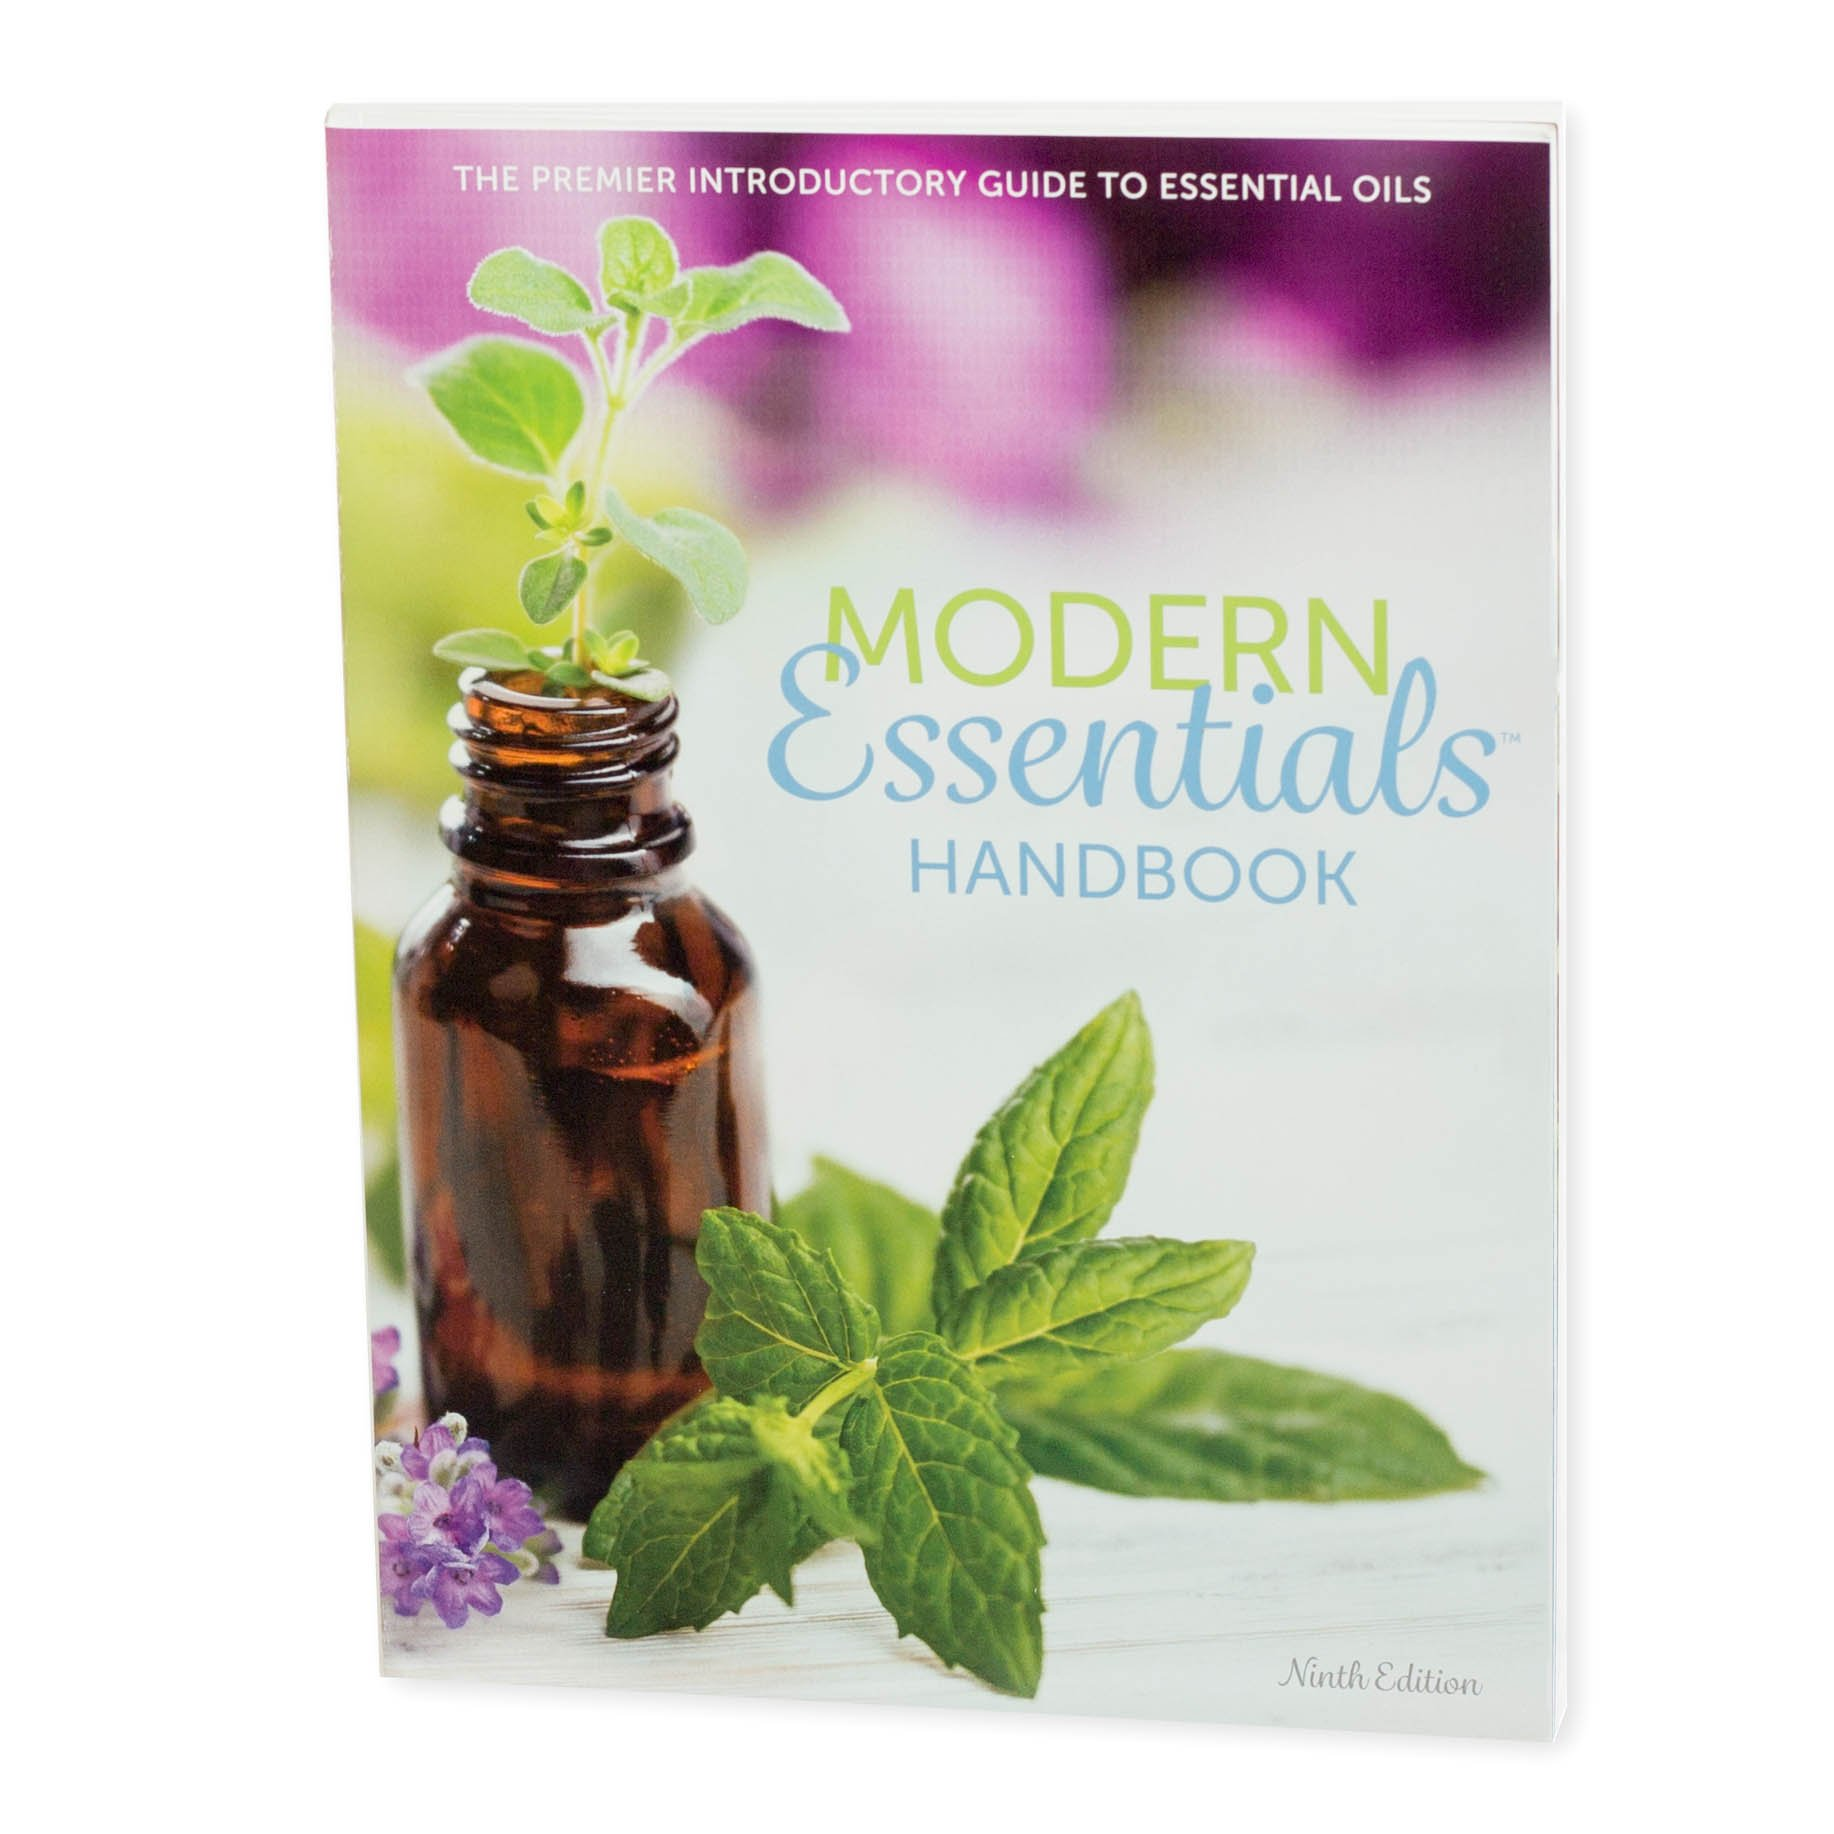 Modern Essentials Handbook: The premier introductory guide to essential oils - 9th edition pdf